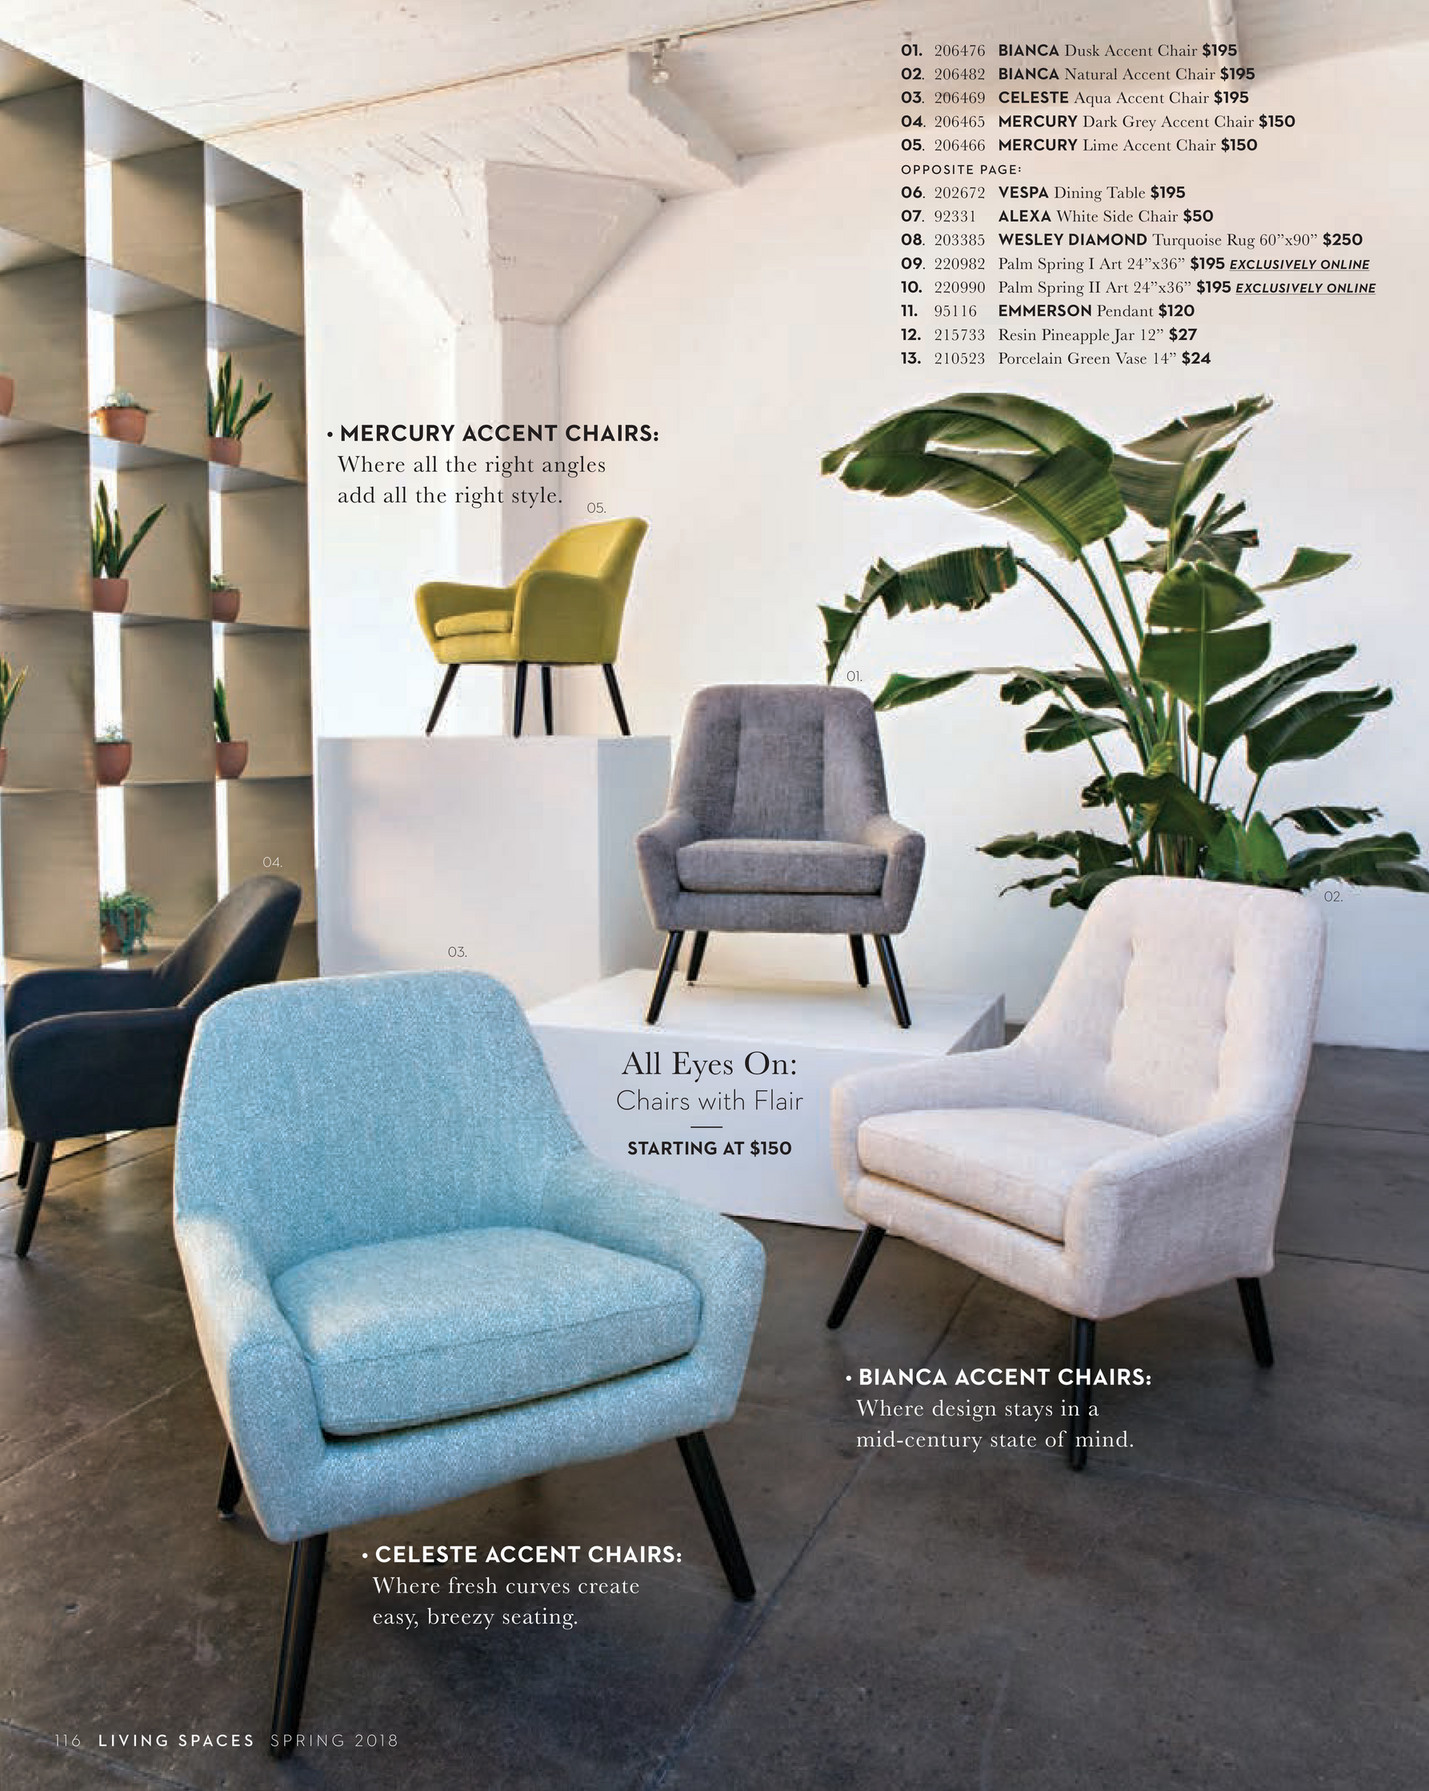 Groovy Living Spaces Spring 2018 Finn Reed Accent Chair Unemploymentrelief Wooden Chair Designs For Living Room Unemploymentrelieforg